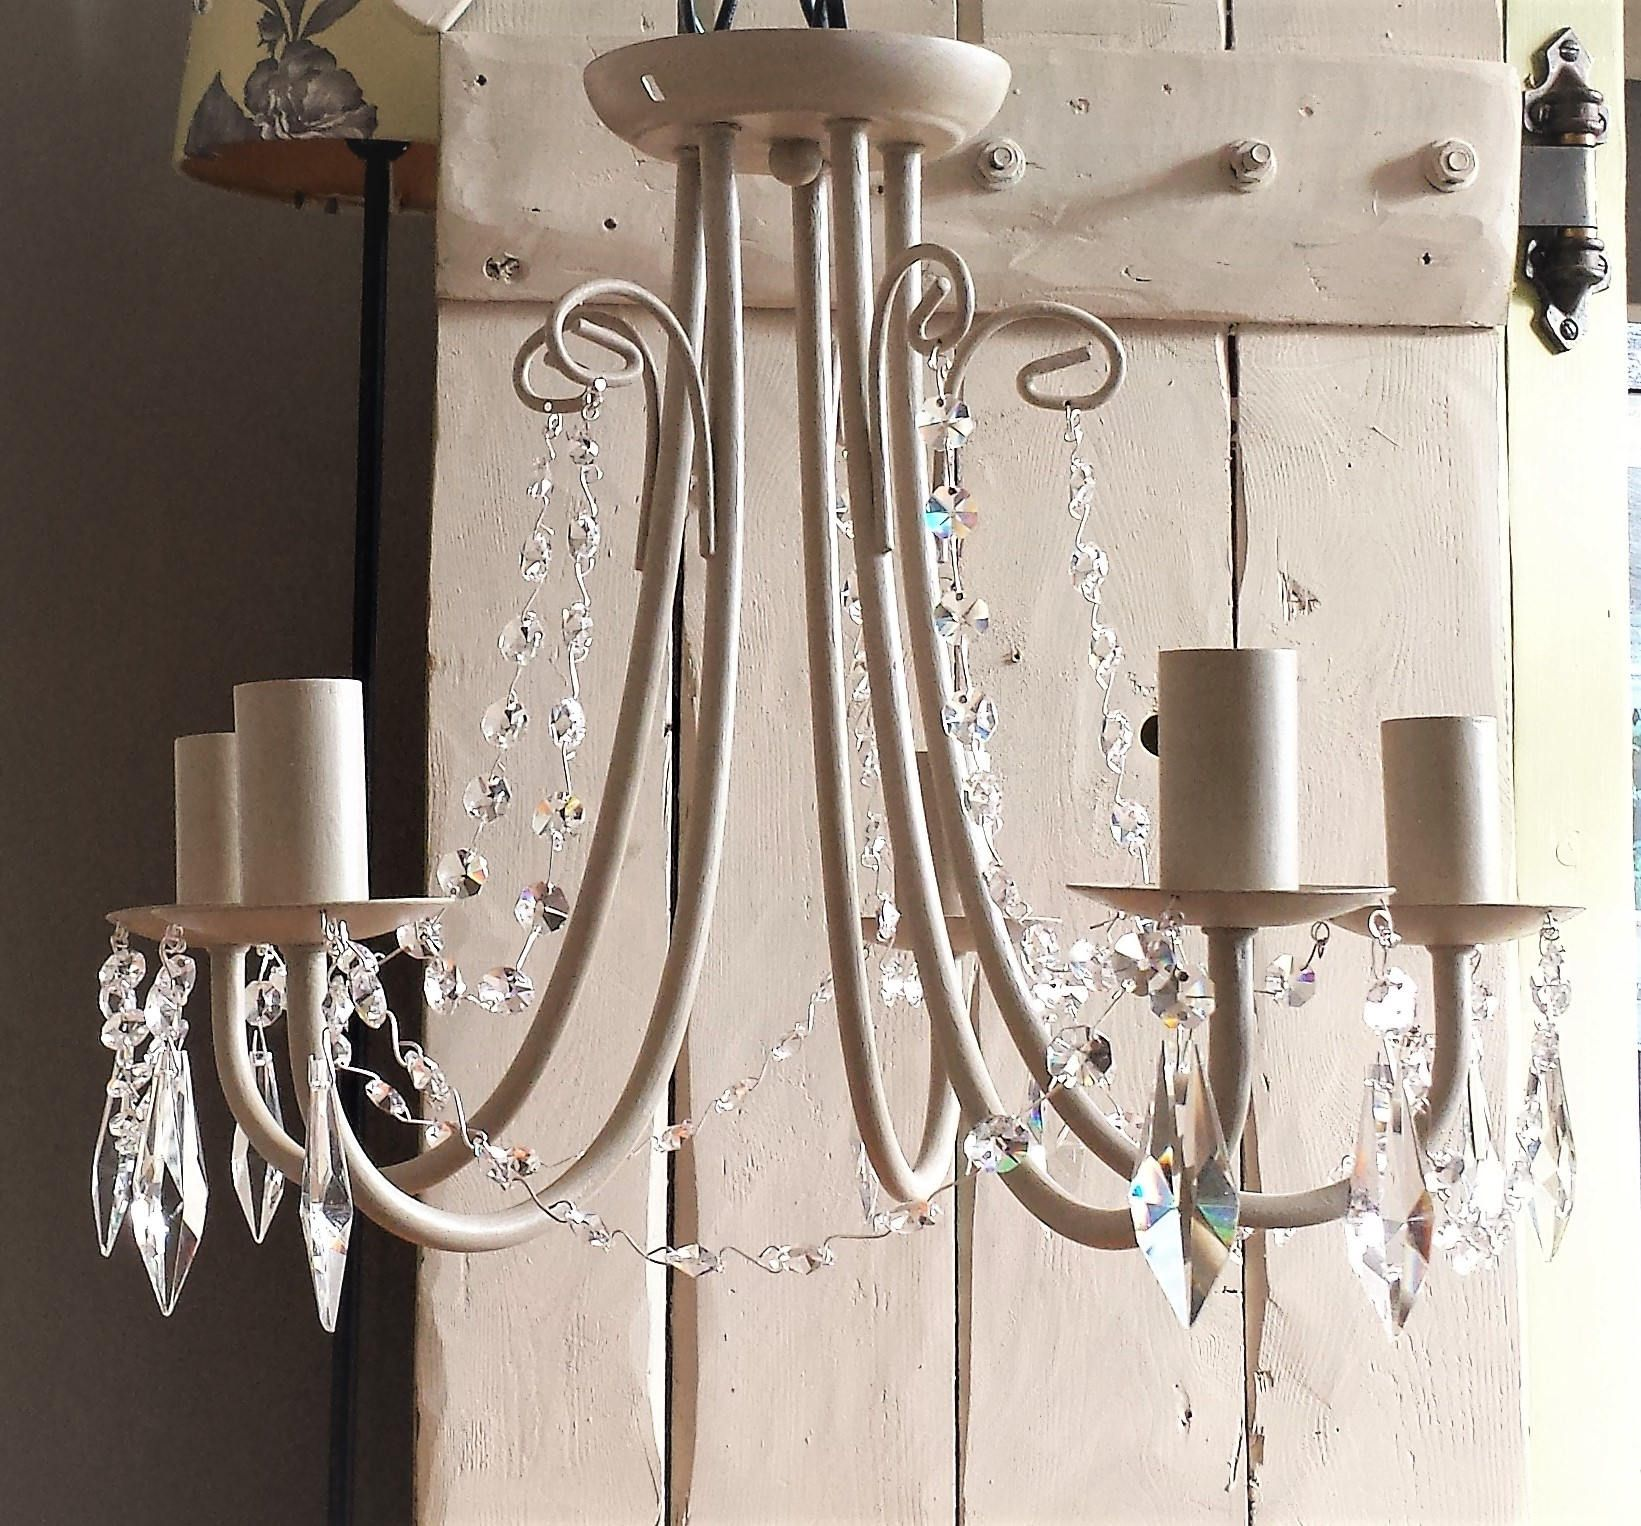 Chandelier vintage crystal lighting fixture flush ceiling light farmhouse lighting country grey uk usa europe matching candle drips by